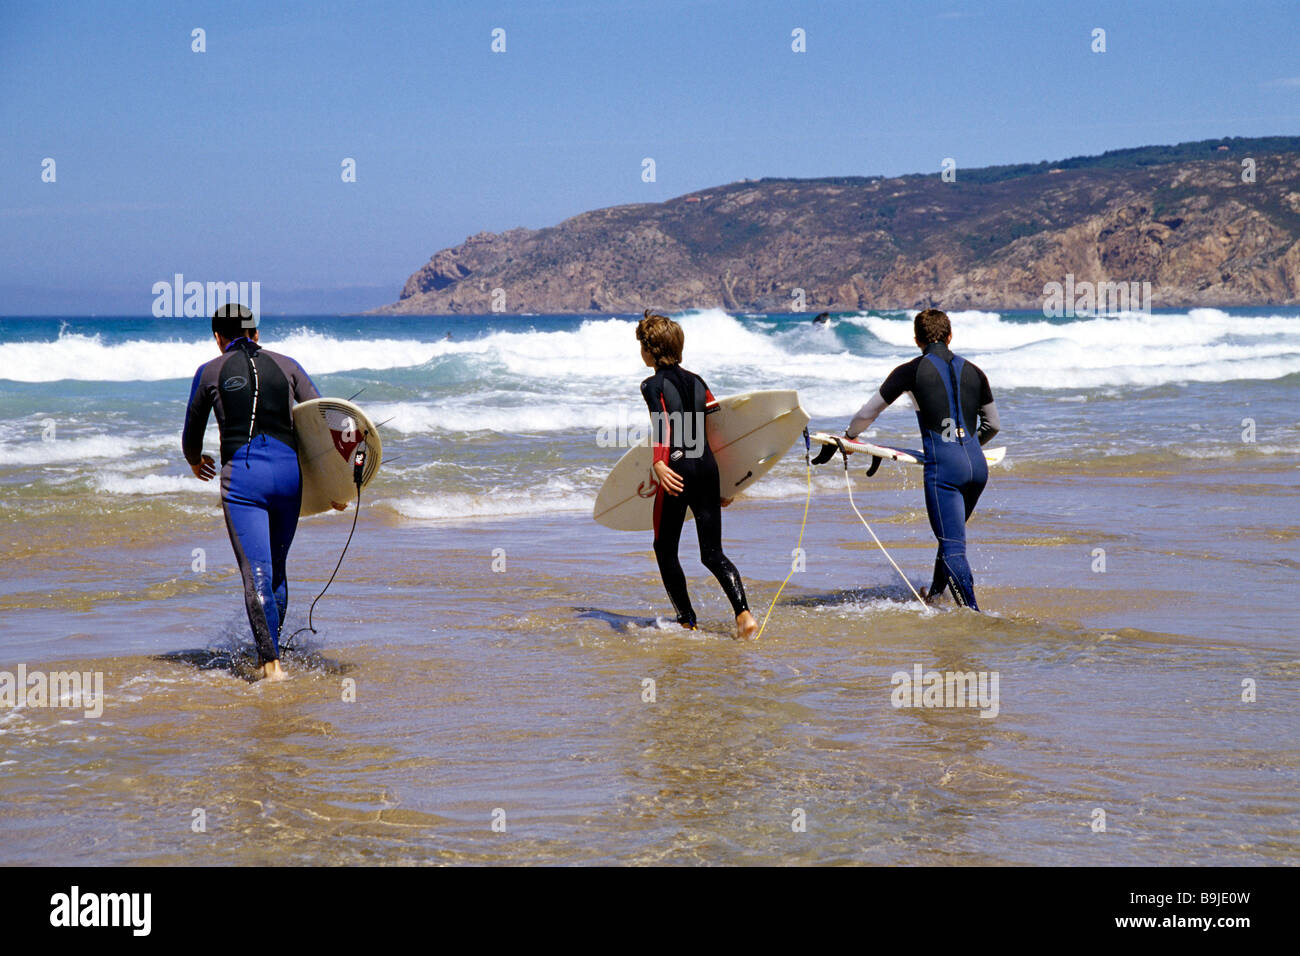 Praia do Guincho, beach on the Atlantic with surfers from Cascais, Estoril and Lisbon, Portugal, Europe Stock Photo